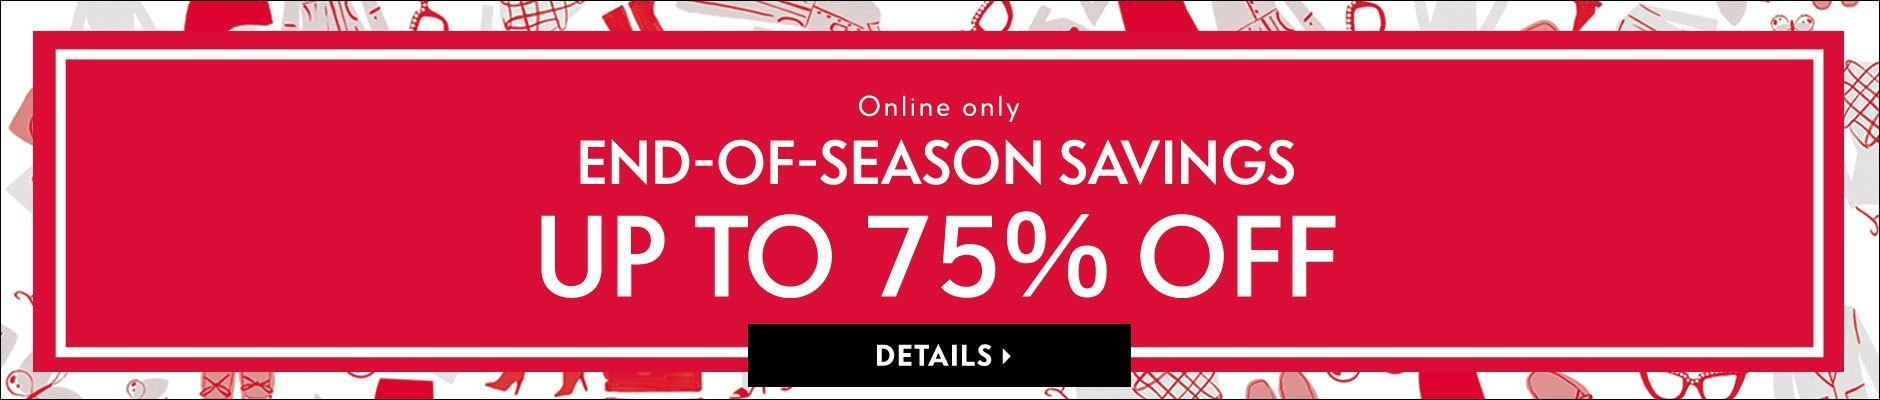 Bargain - Up to 75% OFF - End of Season Sale @ Neiman Marcus